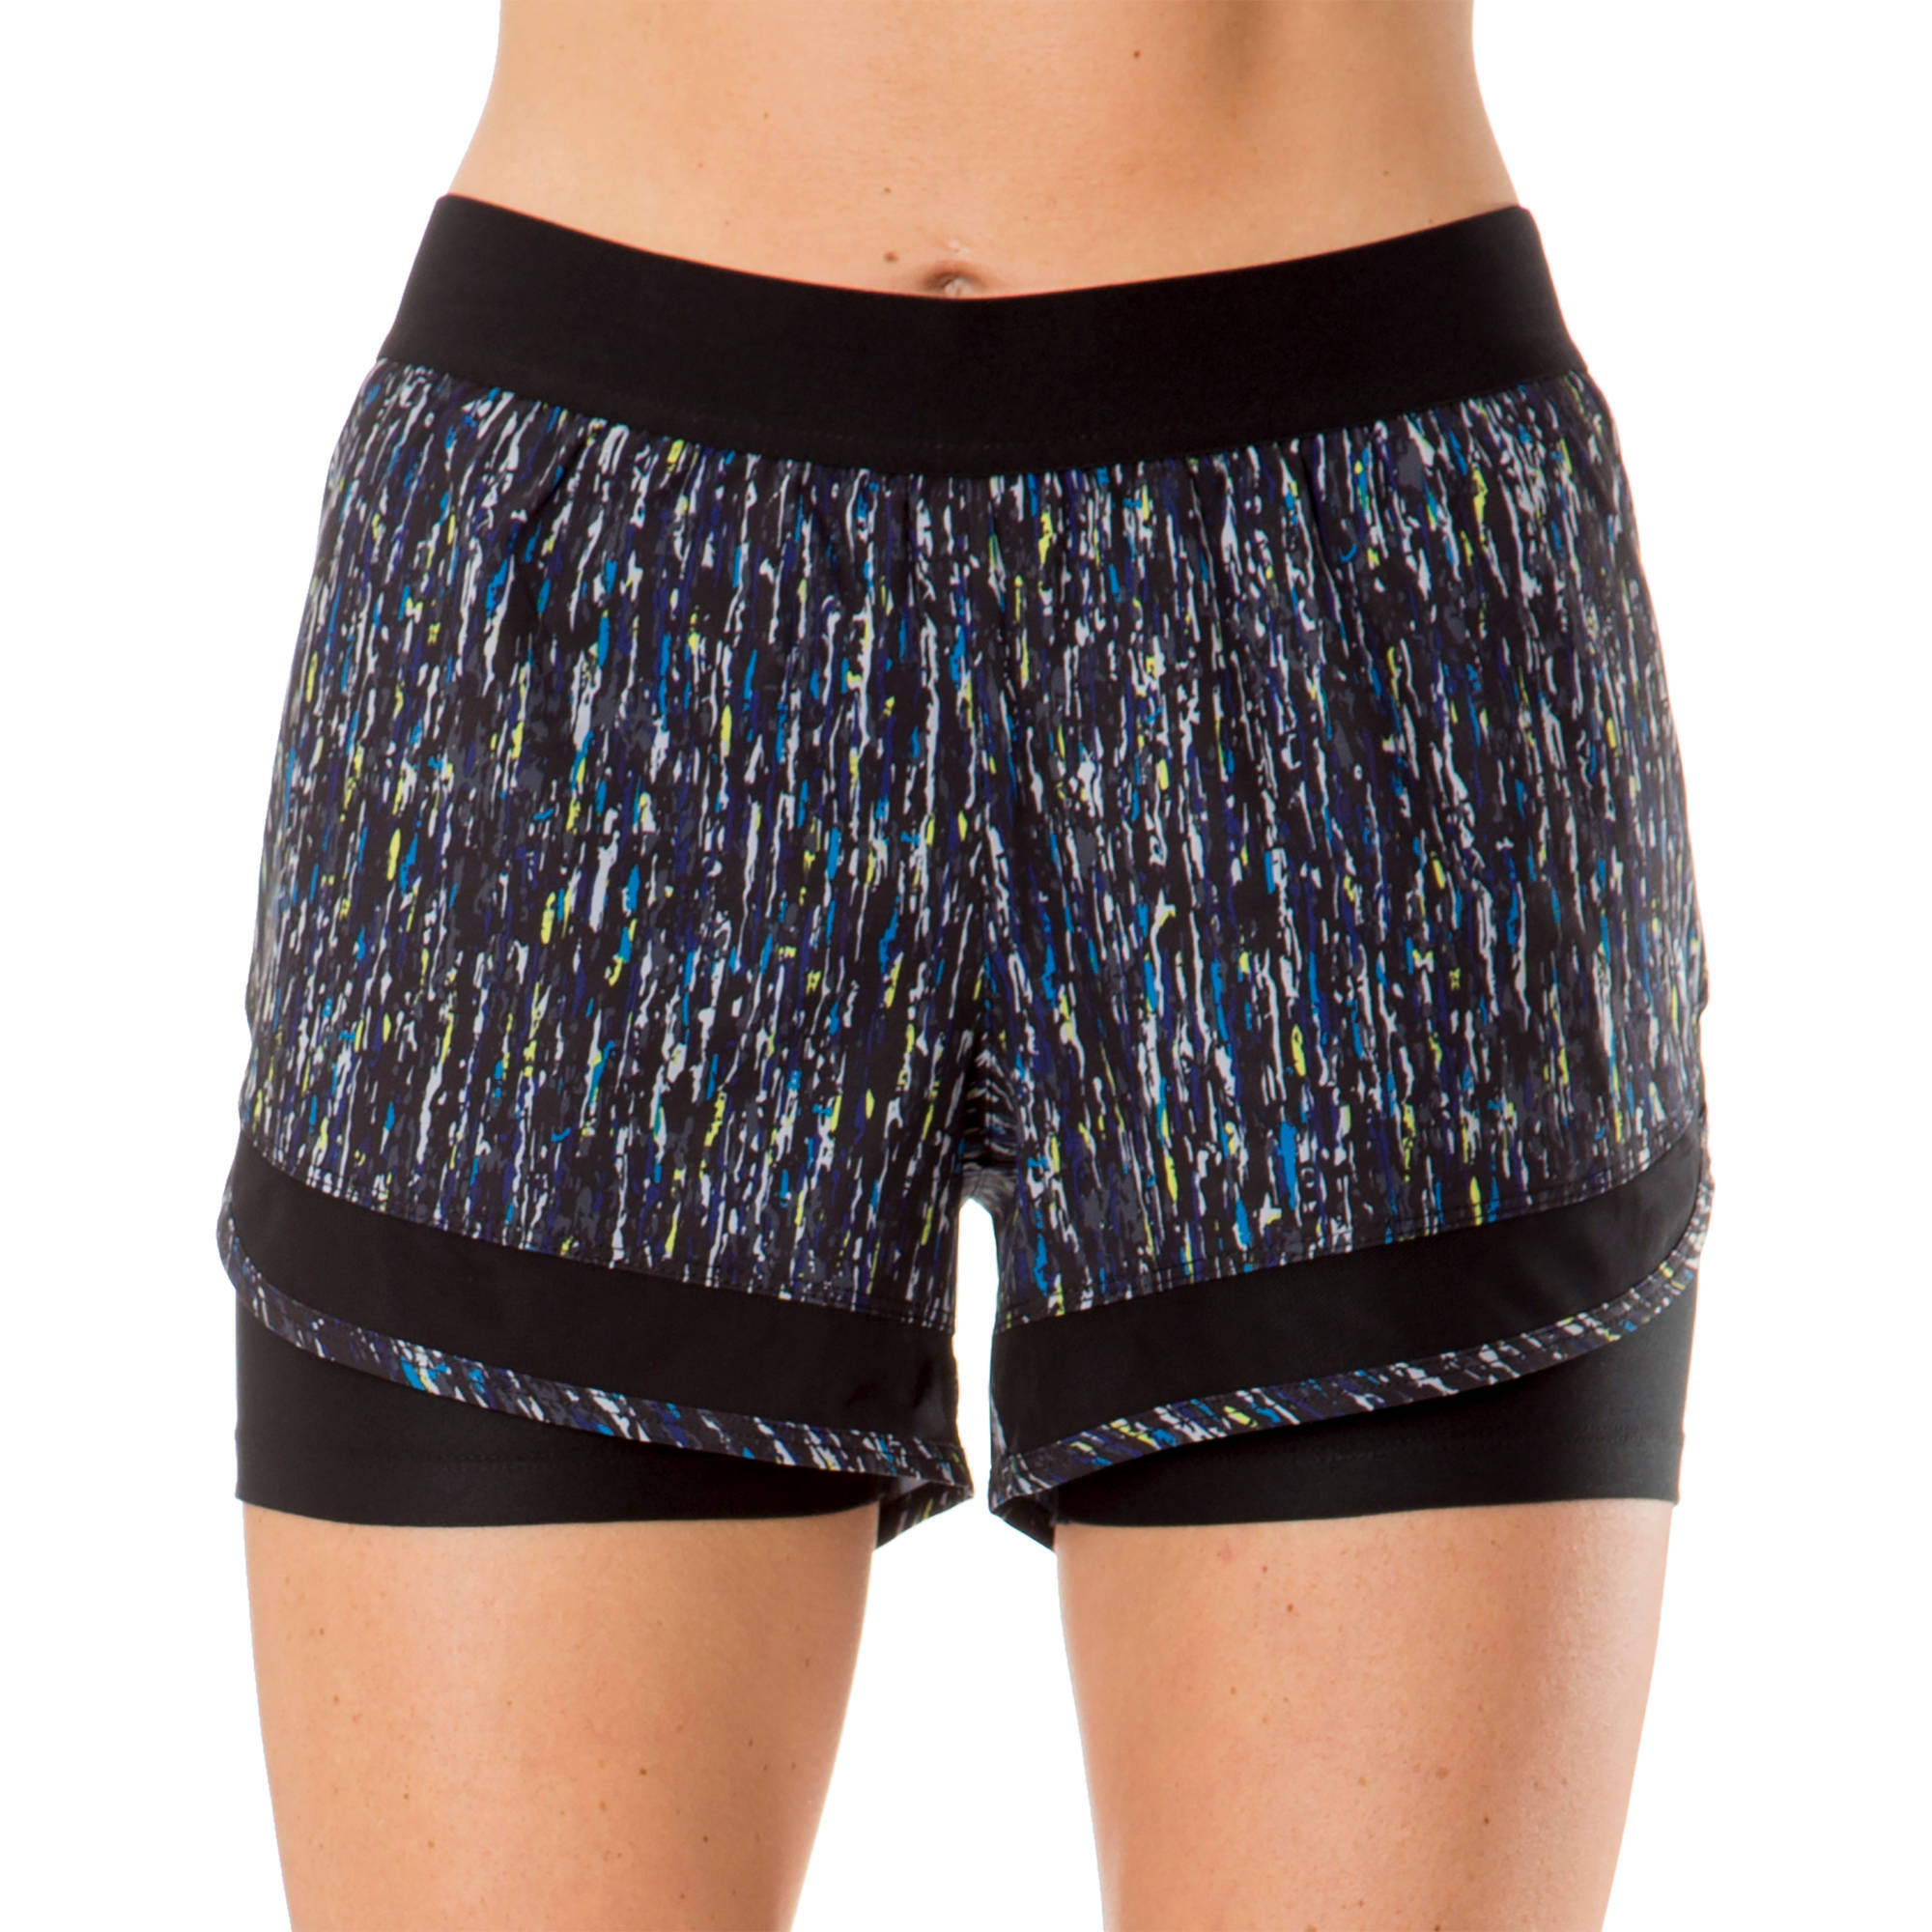 Impact by Jillian Michaels Women's Performance Double - Layer Workout Short With Power - Mesh Lining